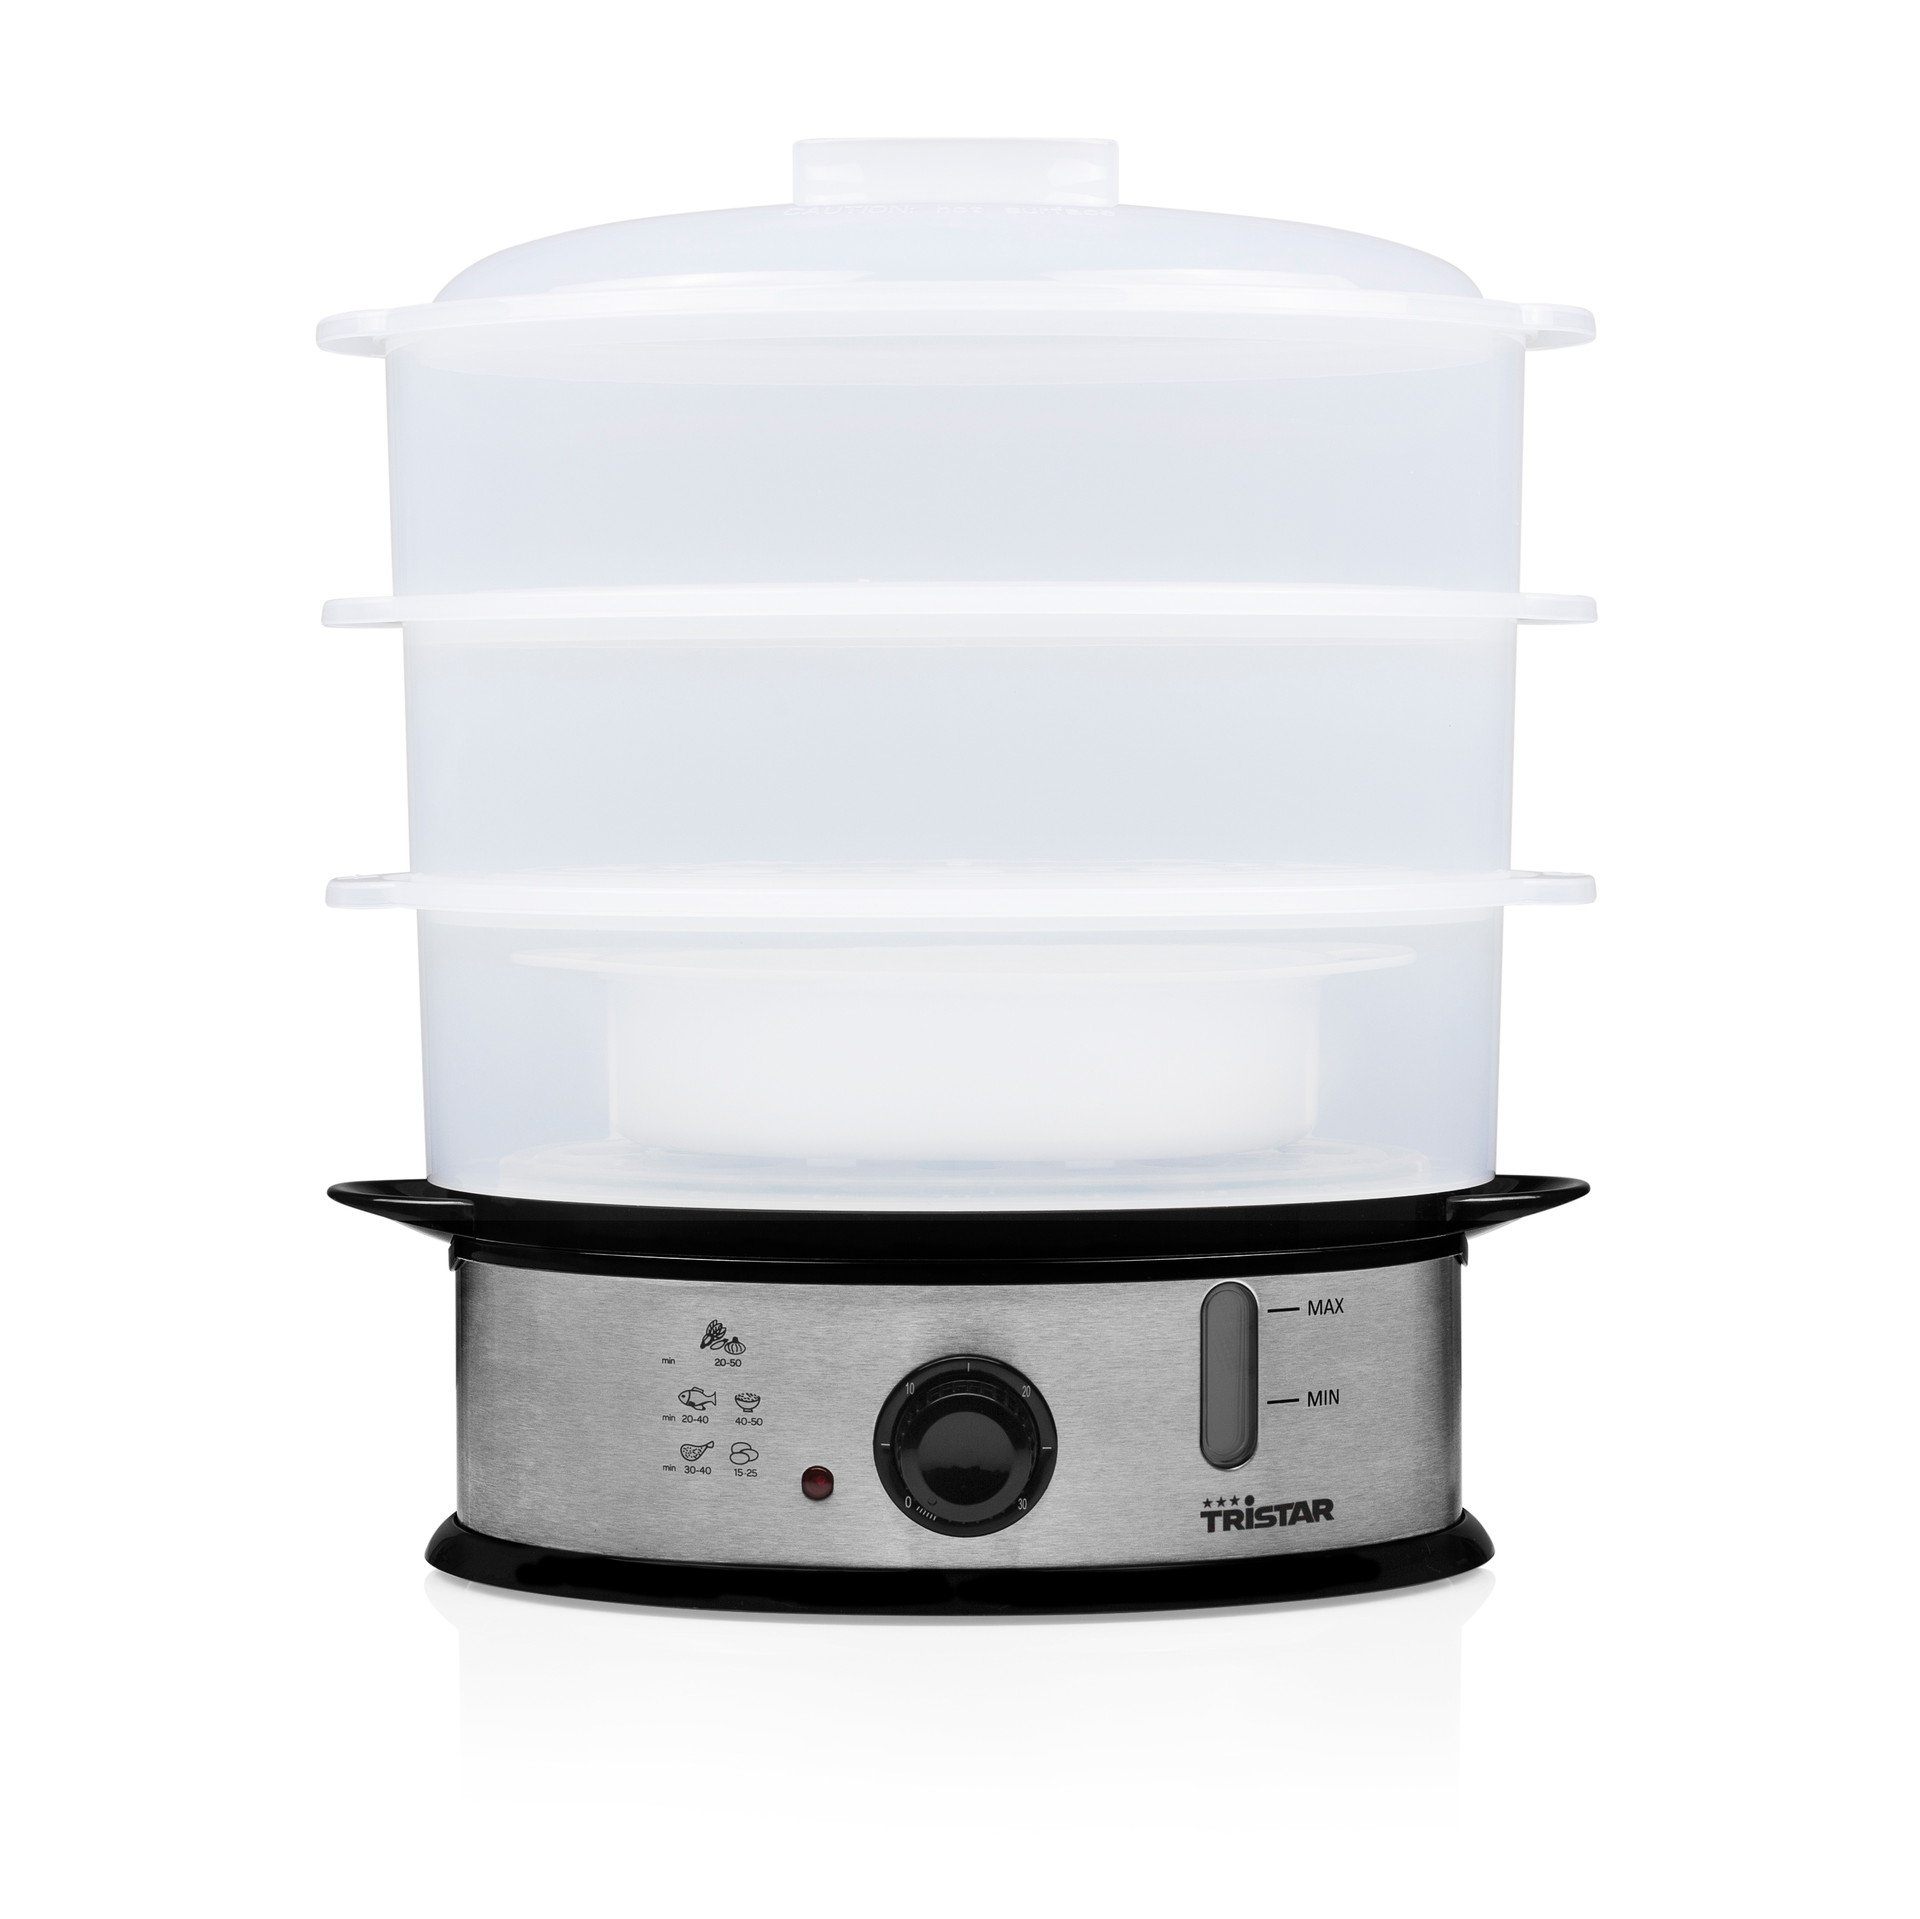 Tristar VS-3914 Food steamer 11L 1200Watt